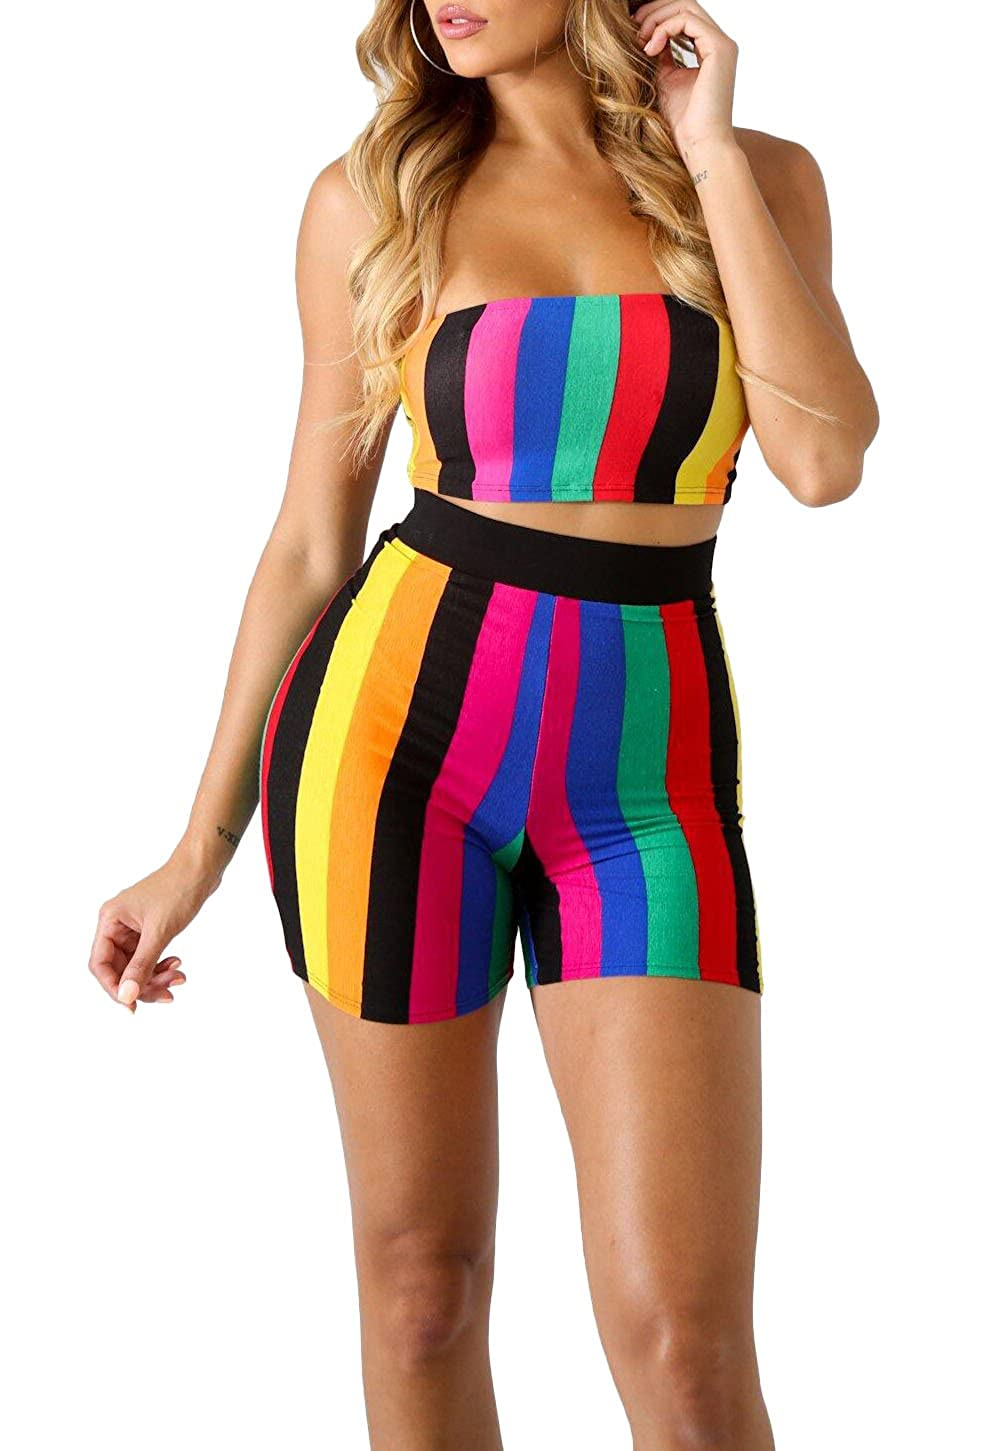 429428aaef Adogirl Womens Sexy 2 Piece Outfits Bodycon Stripe Print Sleeveless Tube Top  and Hot Shorts Set Romper at Amazon Women s Clothing store